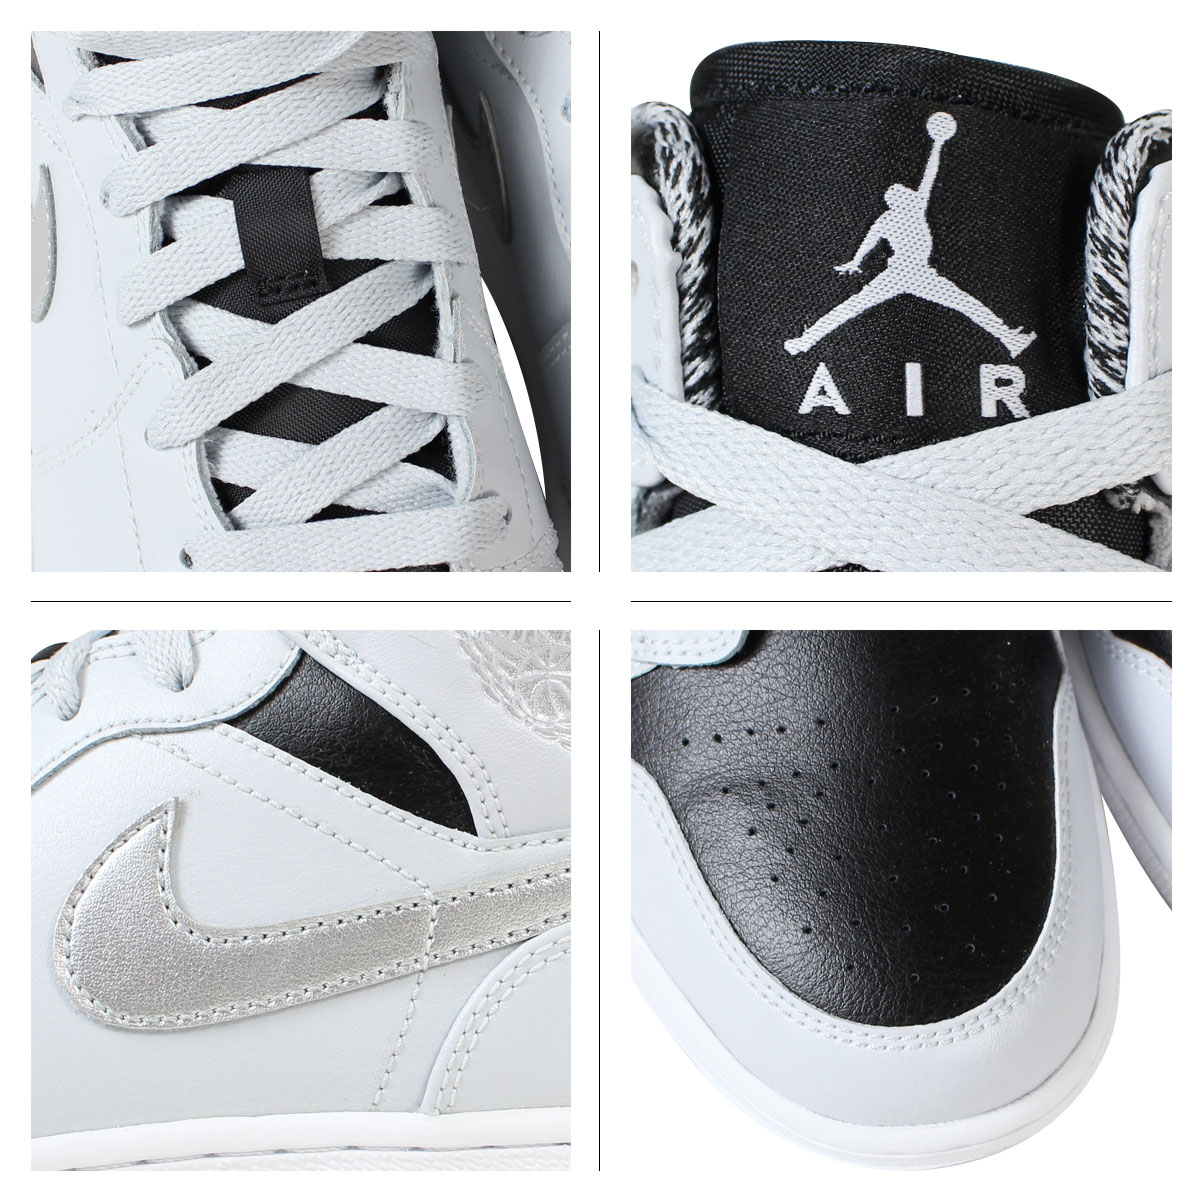 NIKE Nike Air Jordan sneakers Womens AIR JORDAN 1 MID BG Air Jordan 1 mid  554725 - 032 grey shoes [9/1 Add in stock]